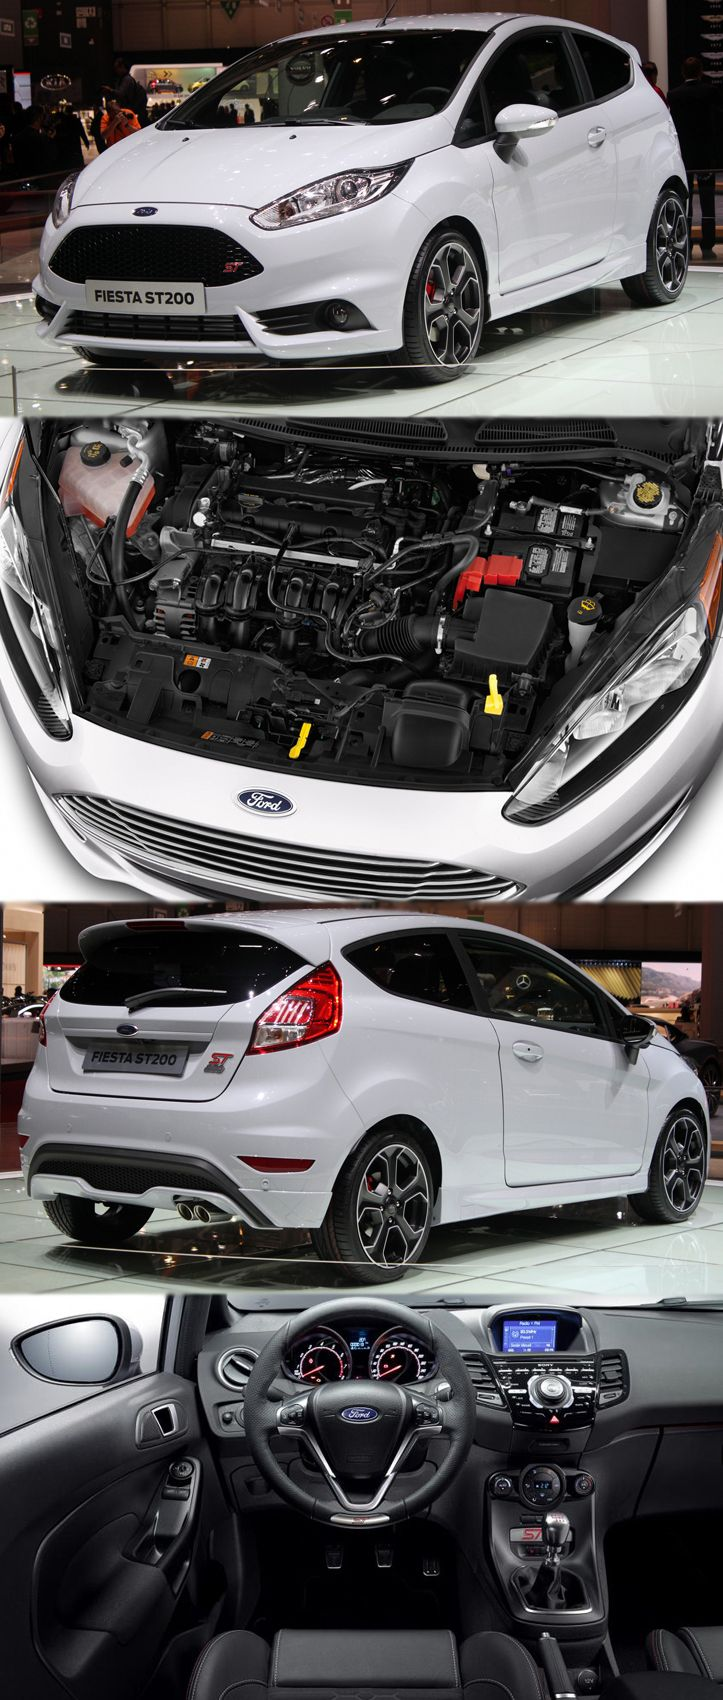 Ford fiesta will cost you diesel engine r us